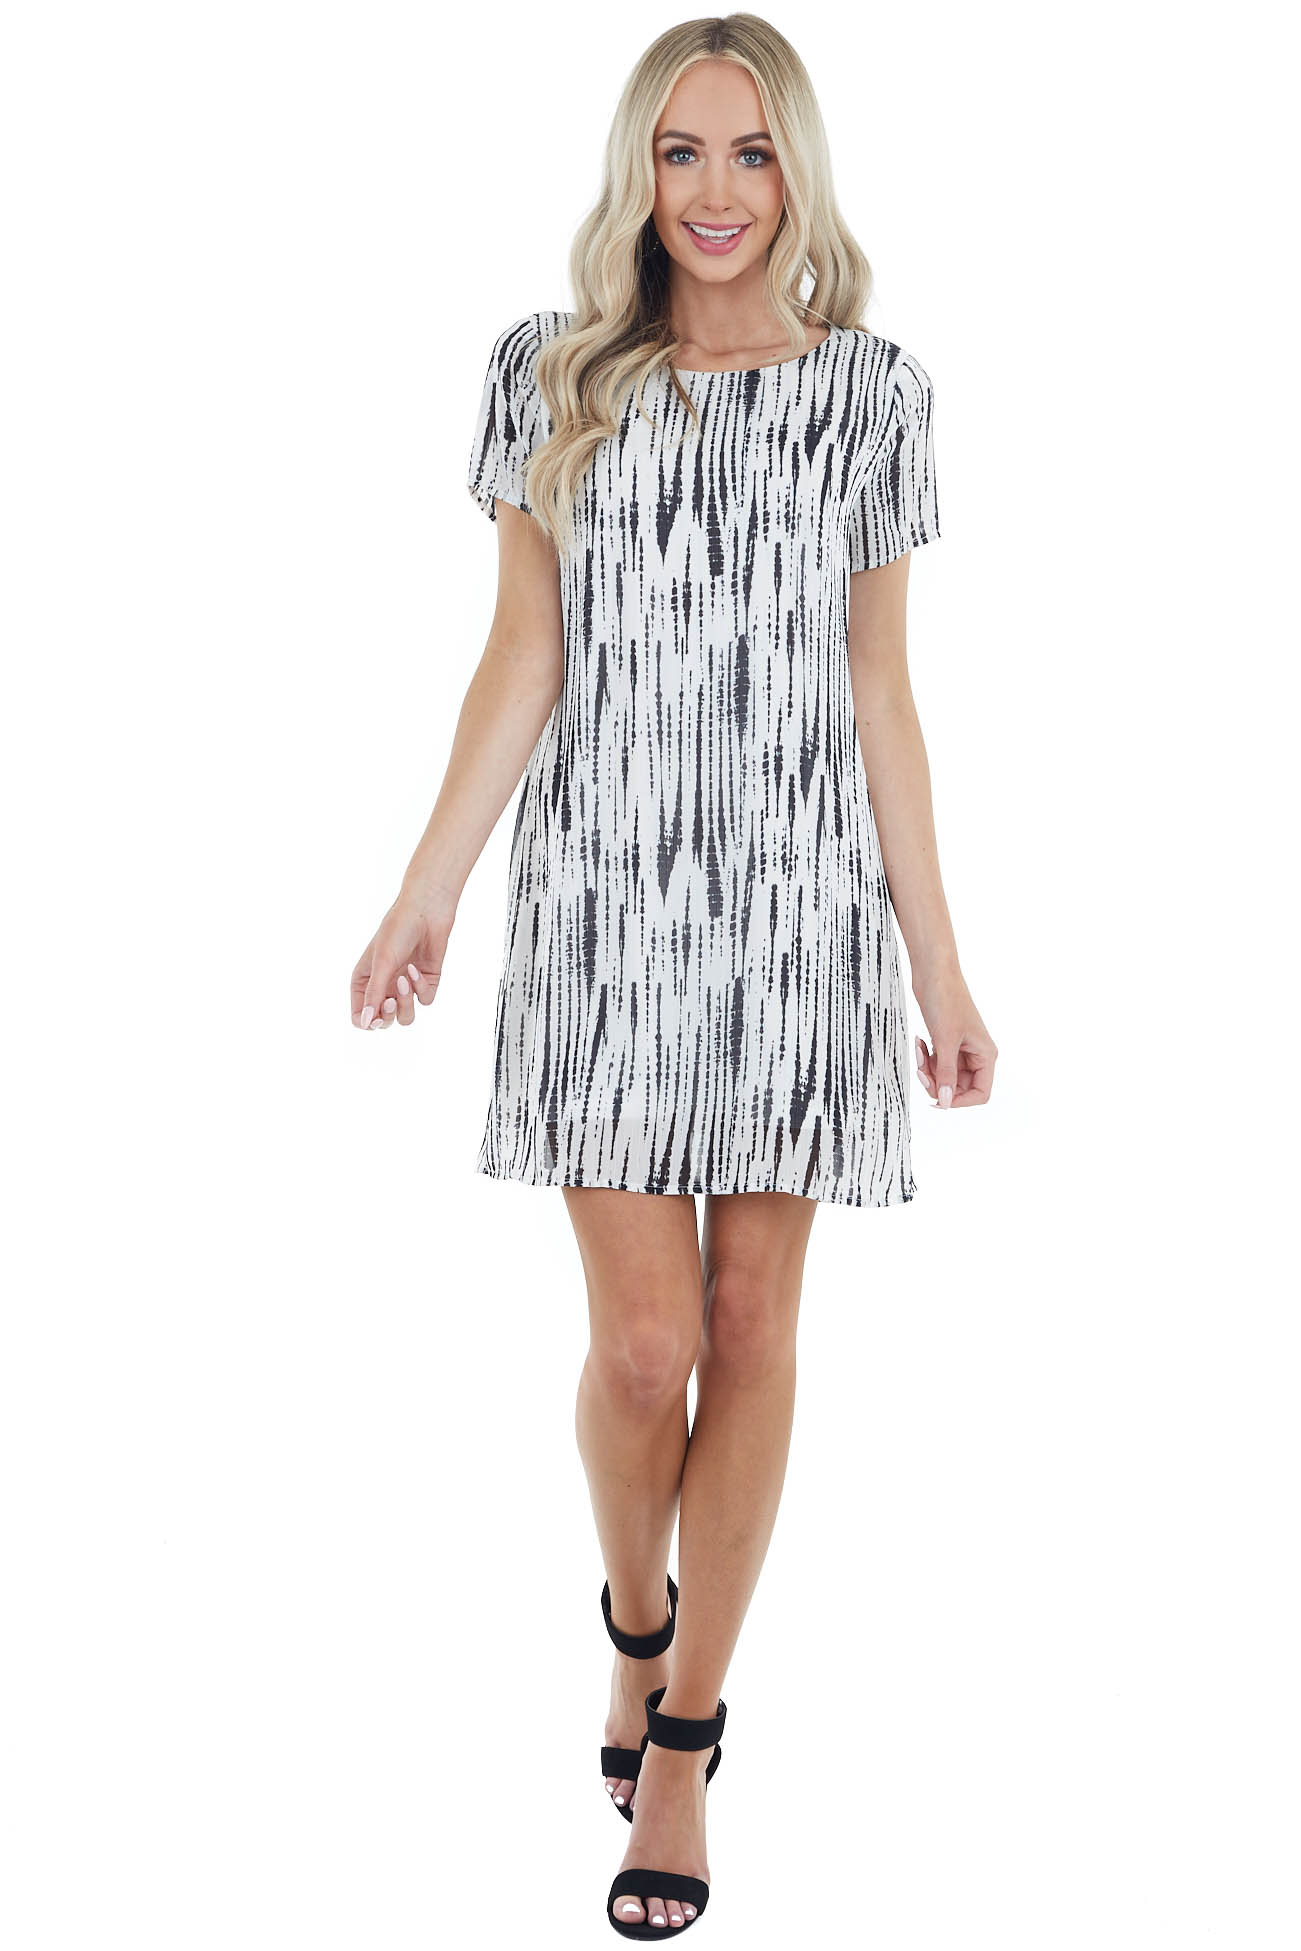 Off White Short Woven Dress with Black Abstract Pattern